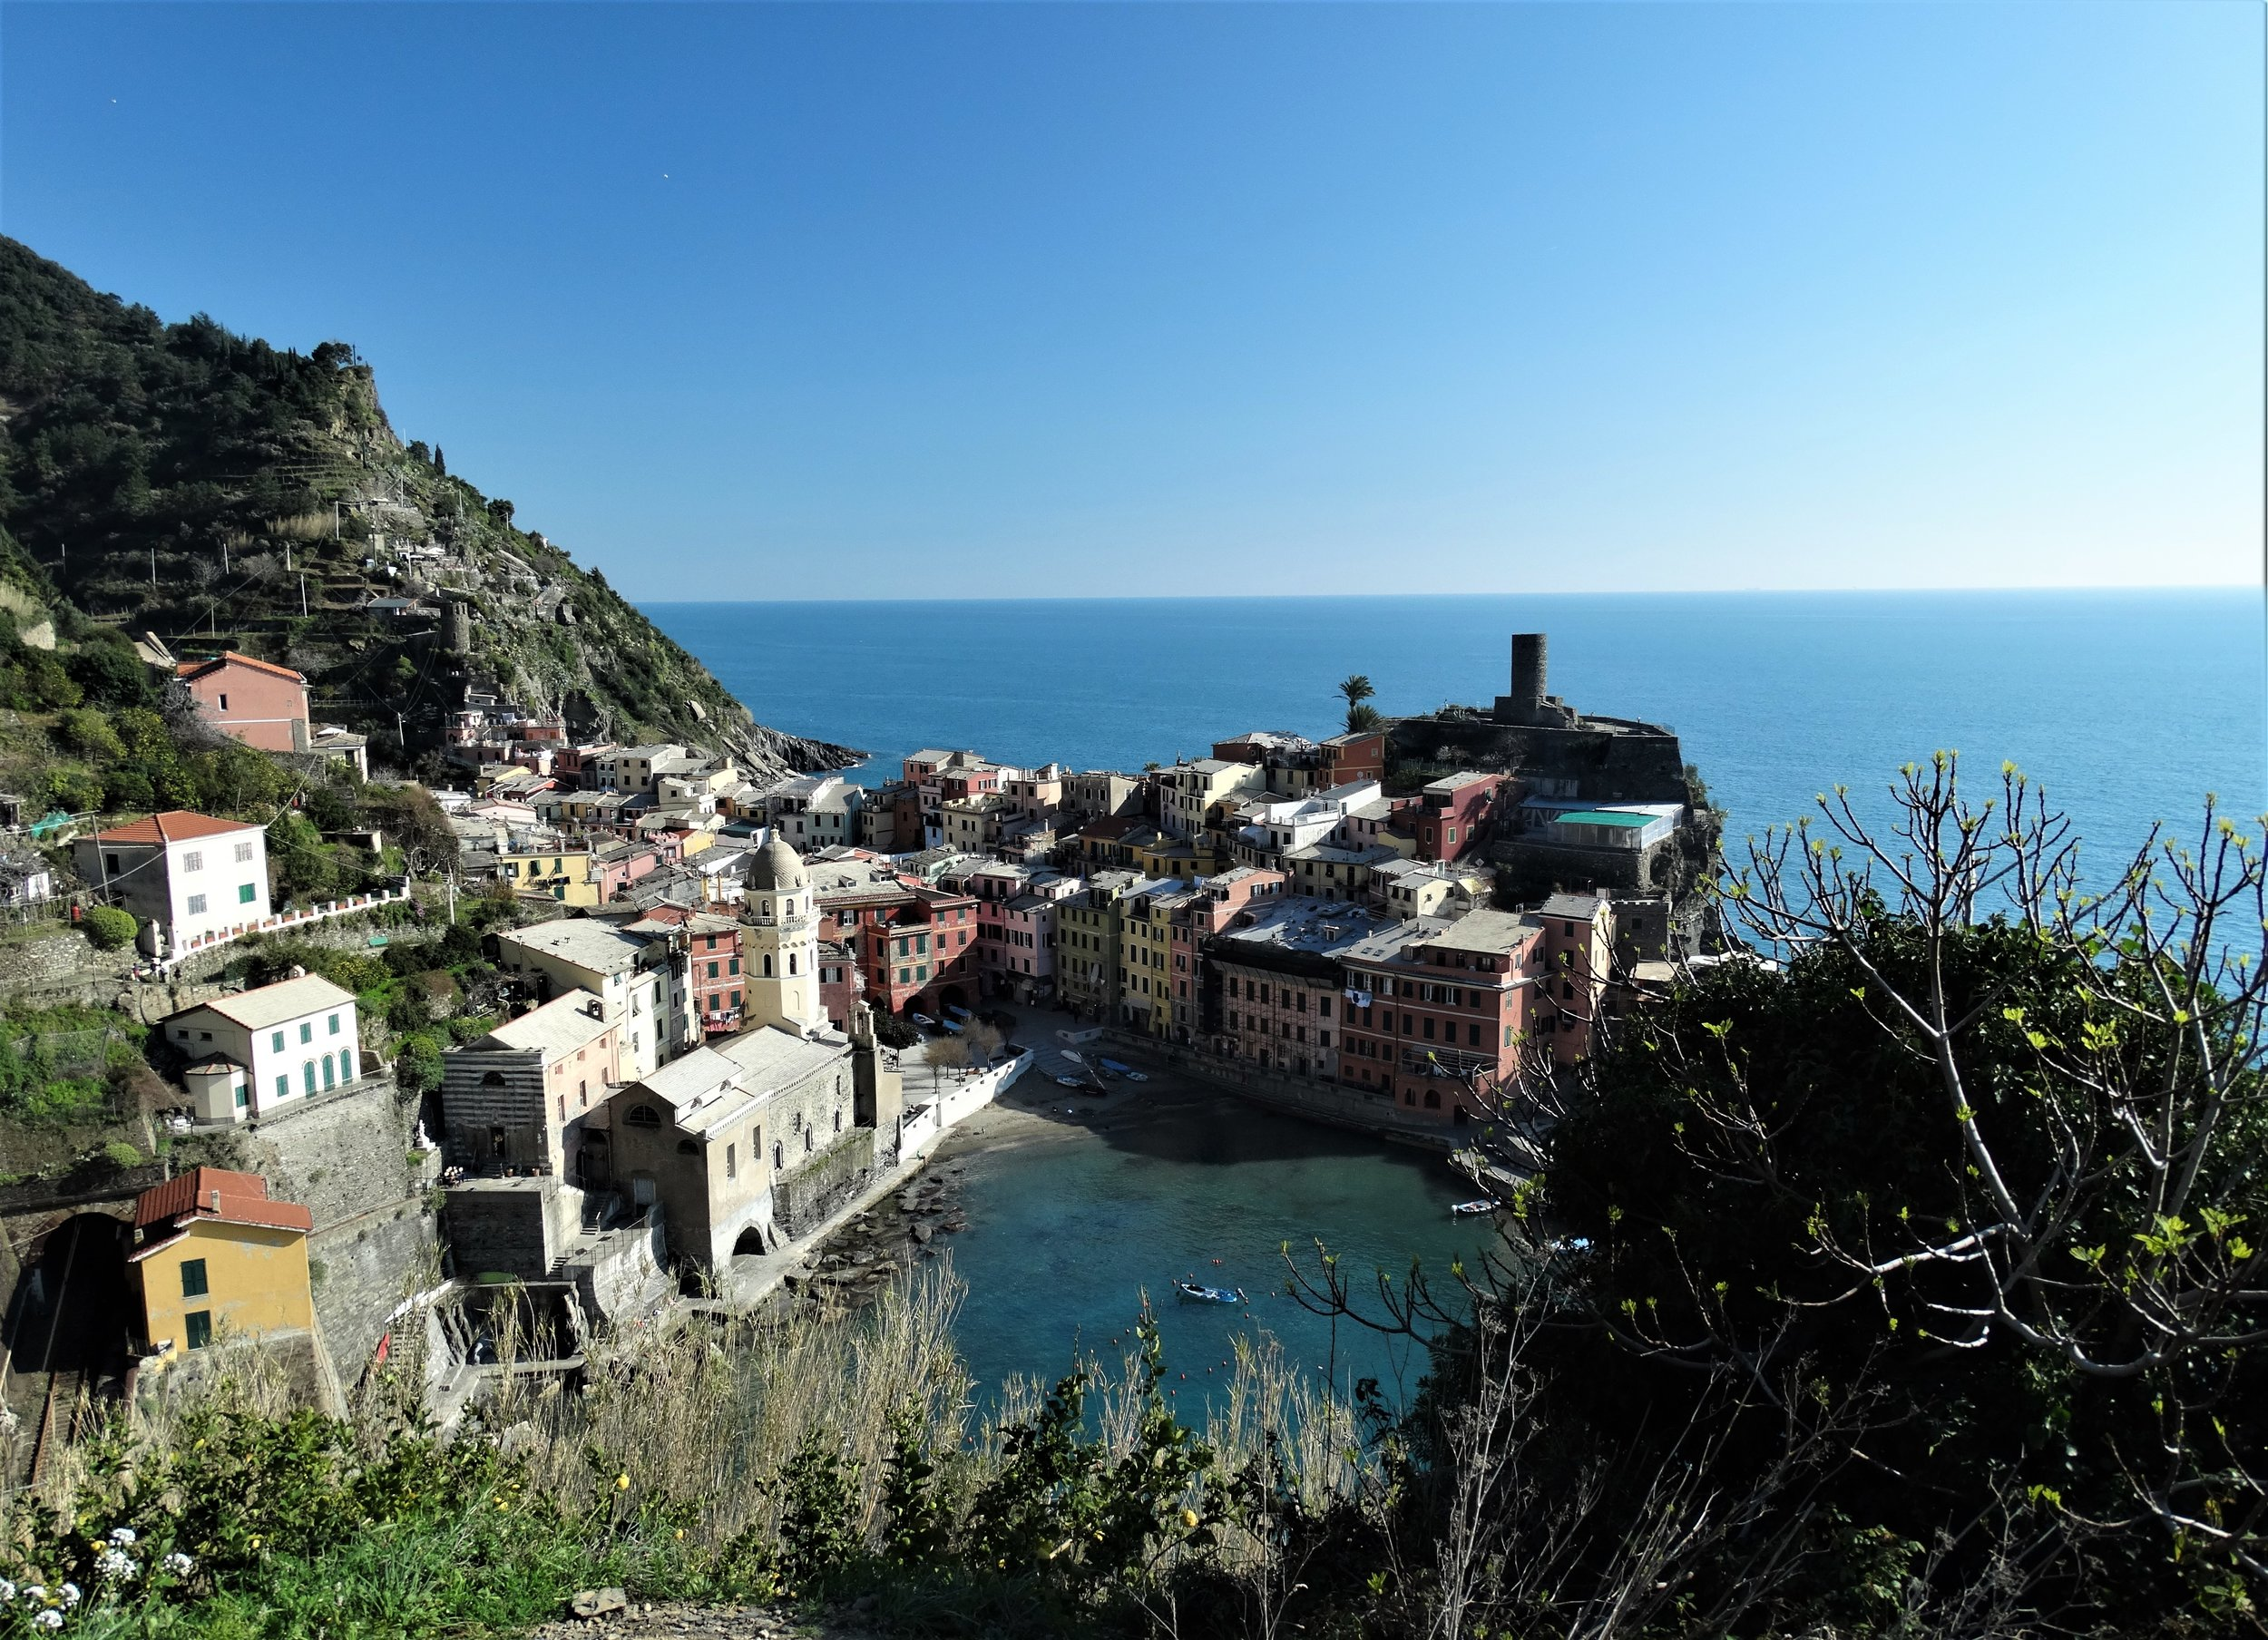 The picturesque village of Vernazza